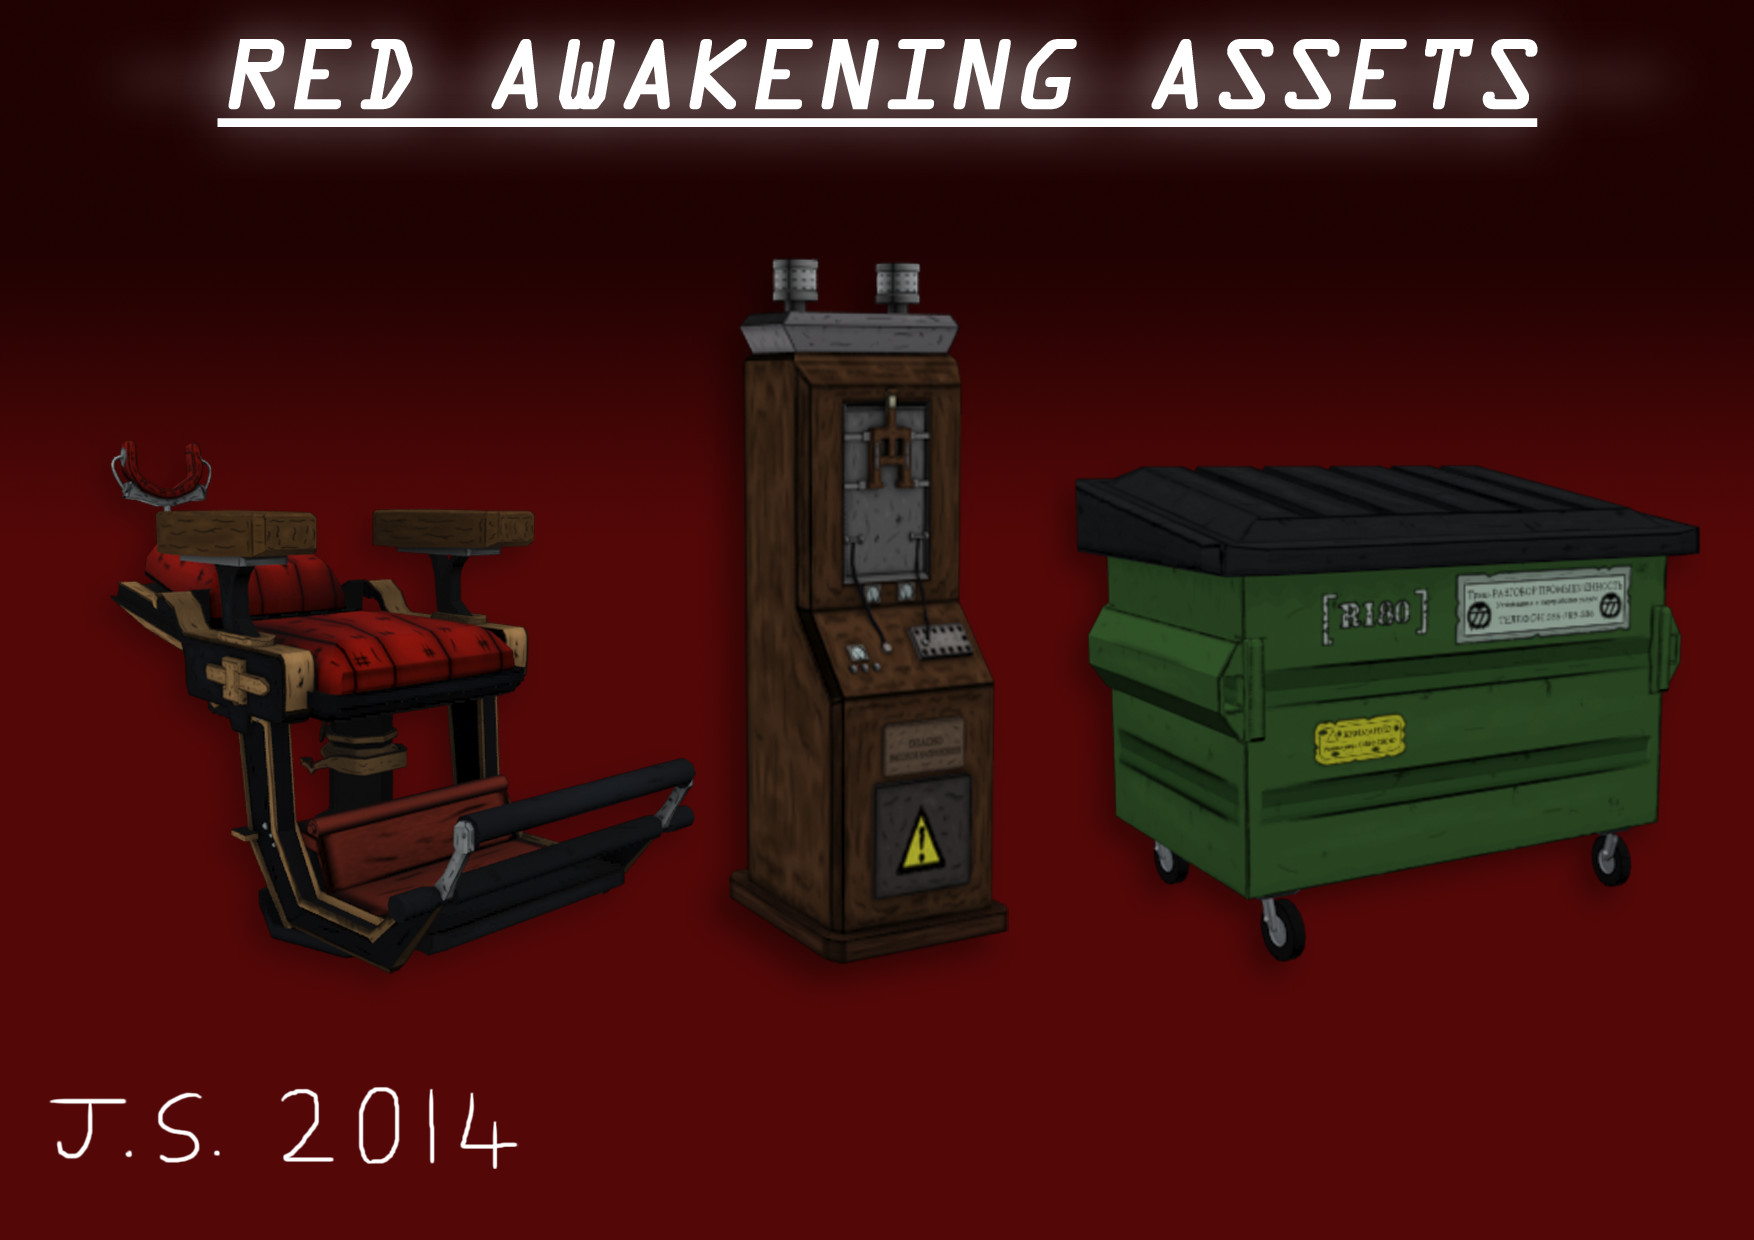 James skinner red awakening assets1